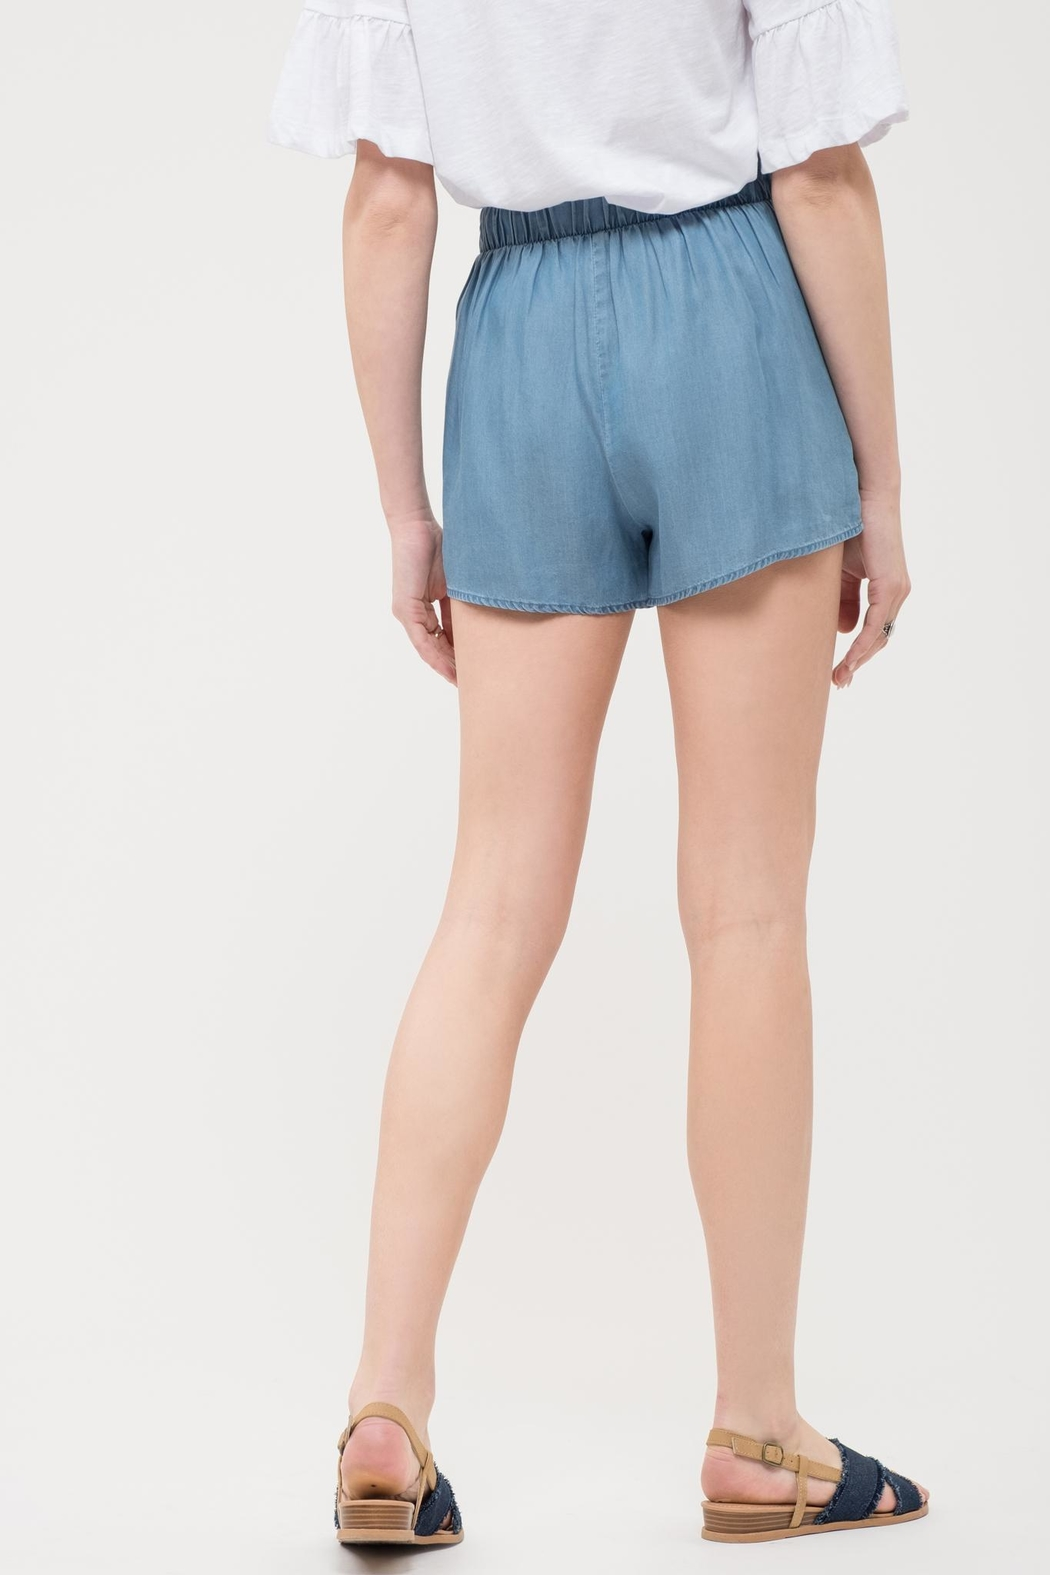 Blu Pepper Chambray Embroidered Shorts - Front Full Image